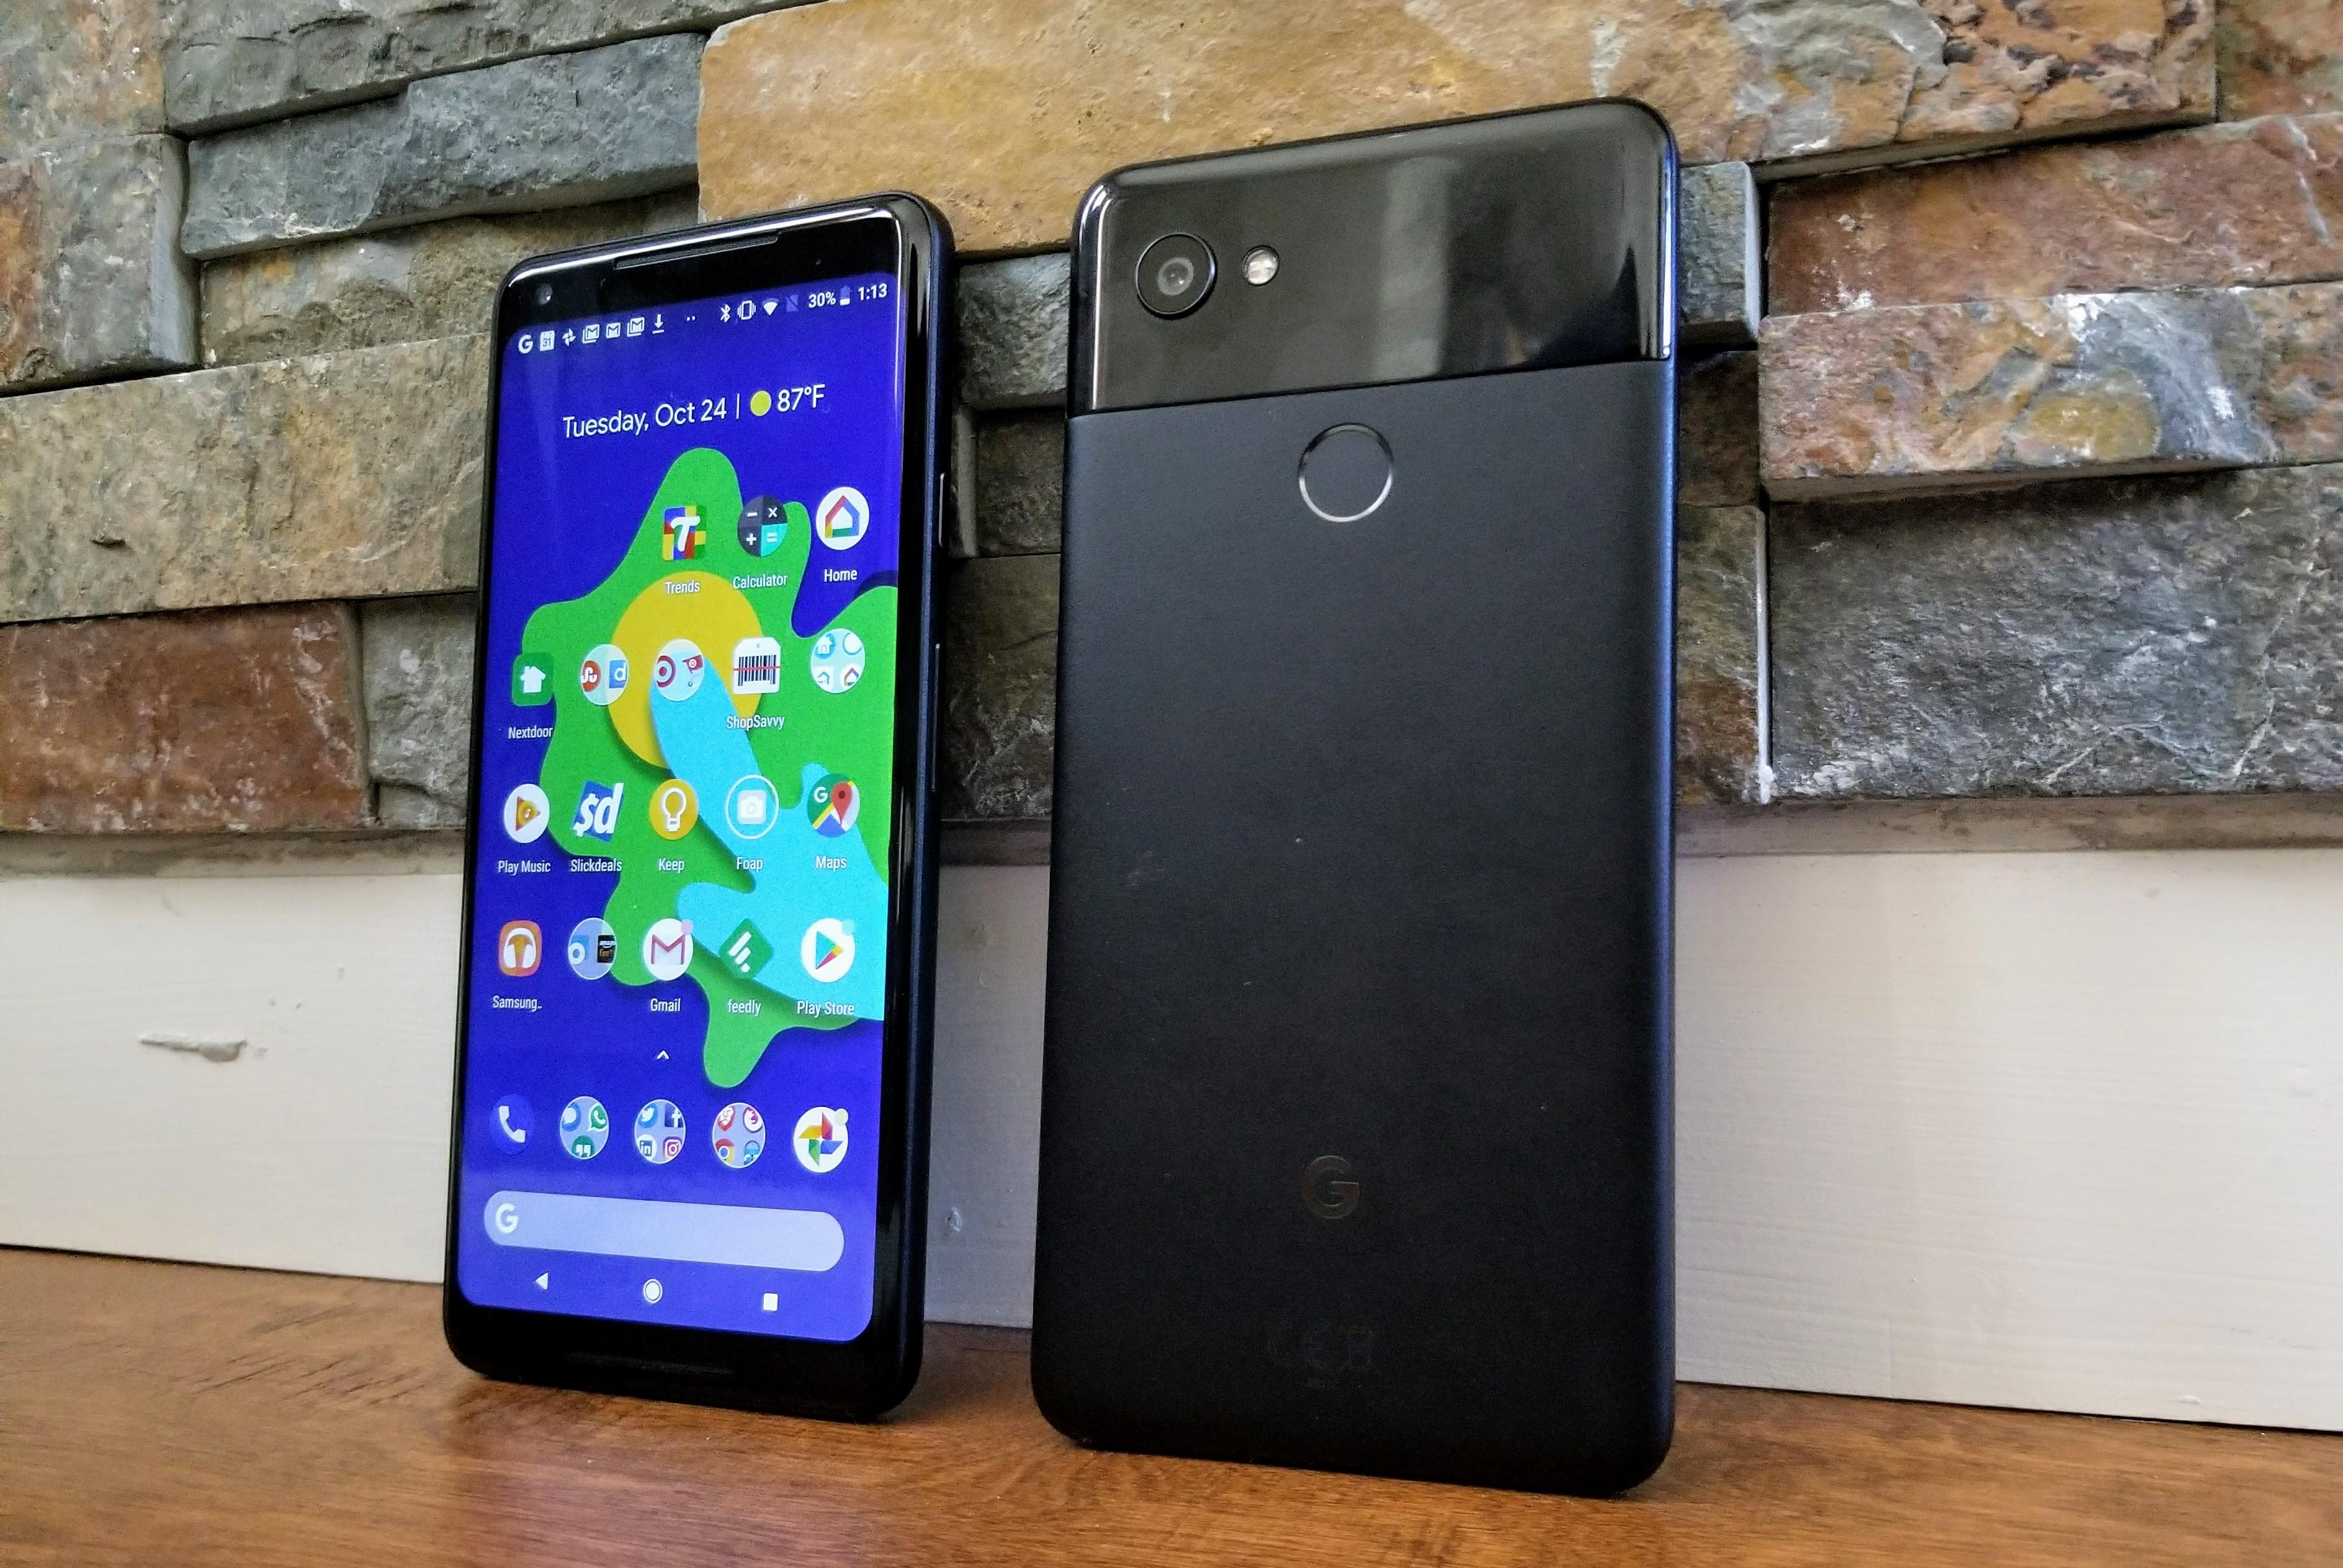 The Google Pixel XL, a 5.5-inch Android phone, has a top-shelf camera and built-in Google Assistant abilities.